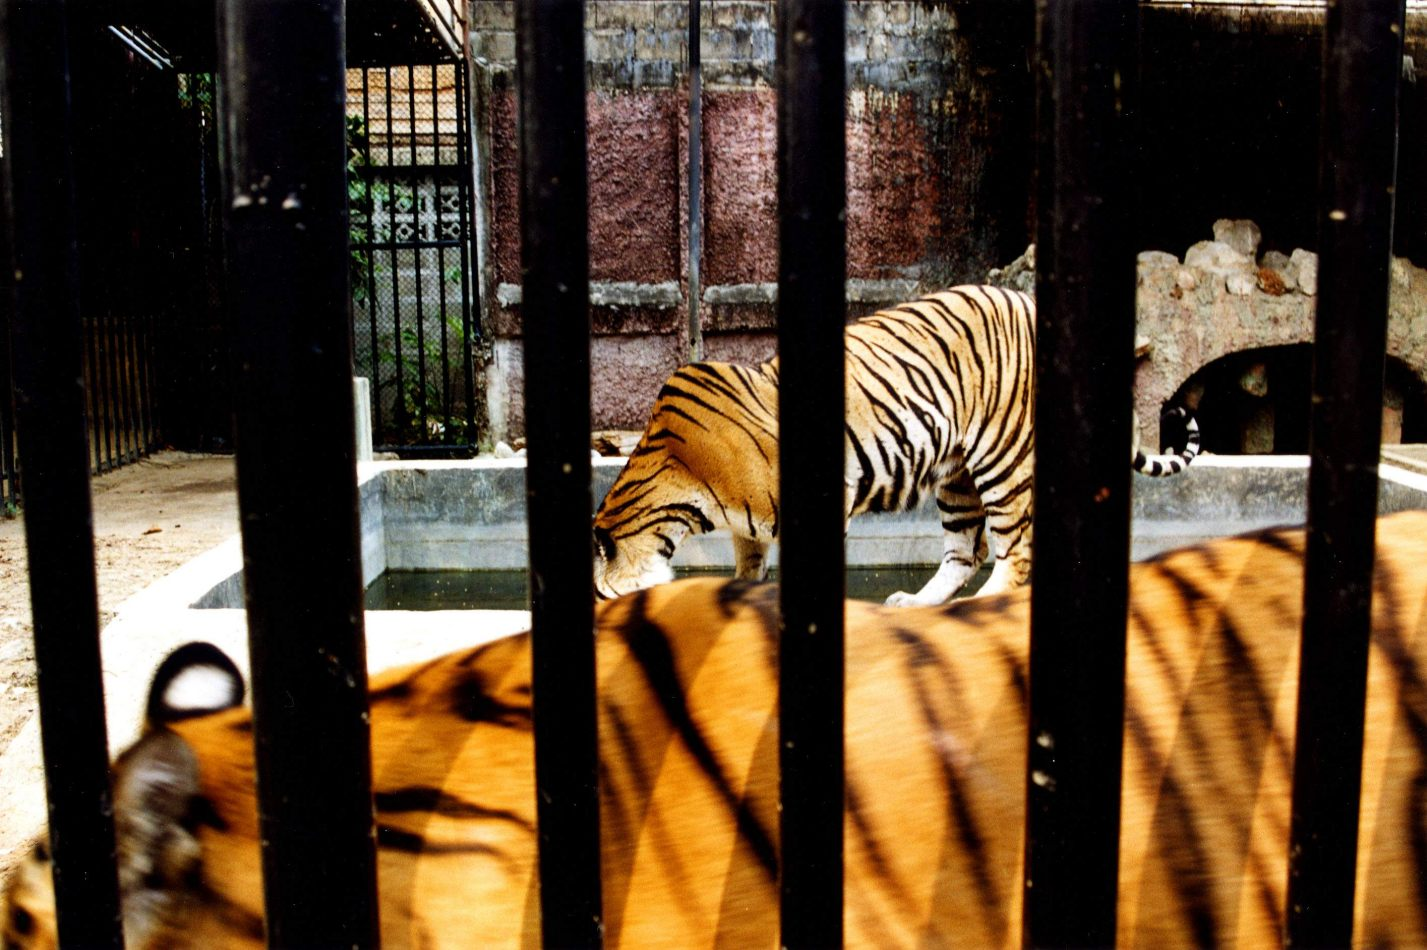 Anthony Ellis Photography: Caged Tiger - Bars and Tiger Stripes